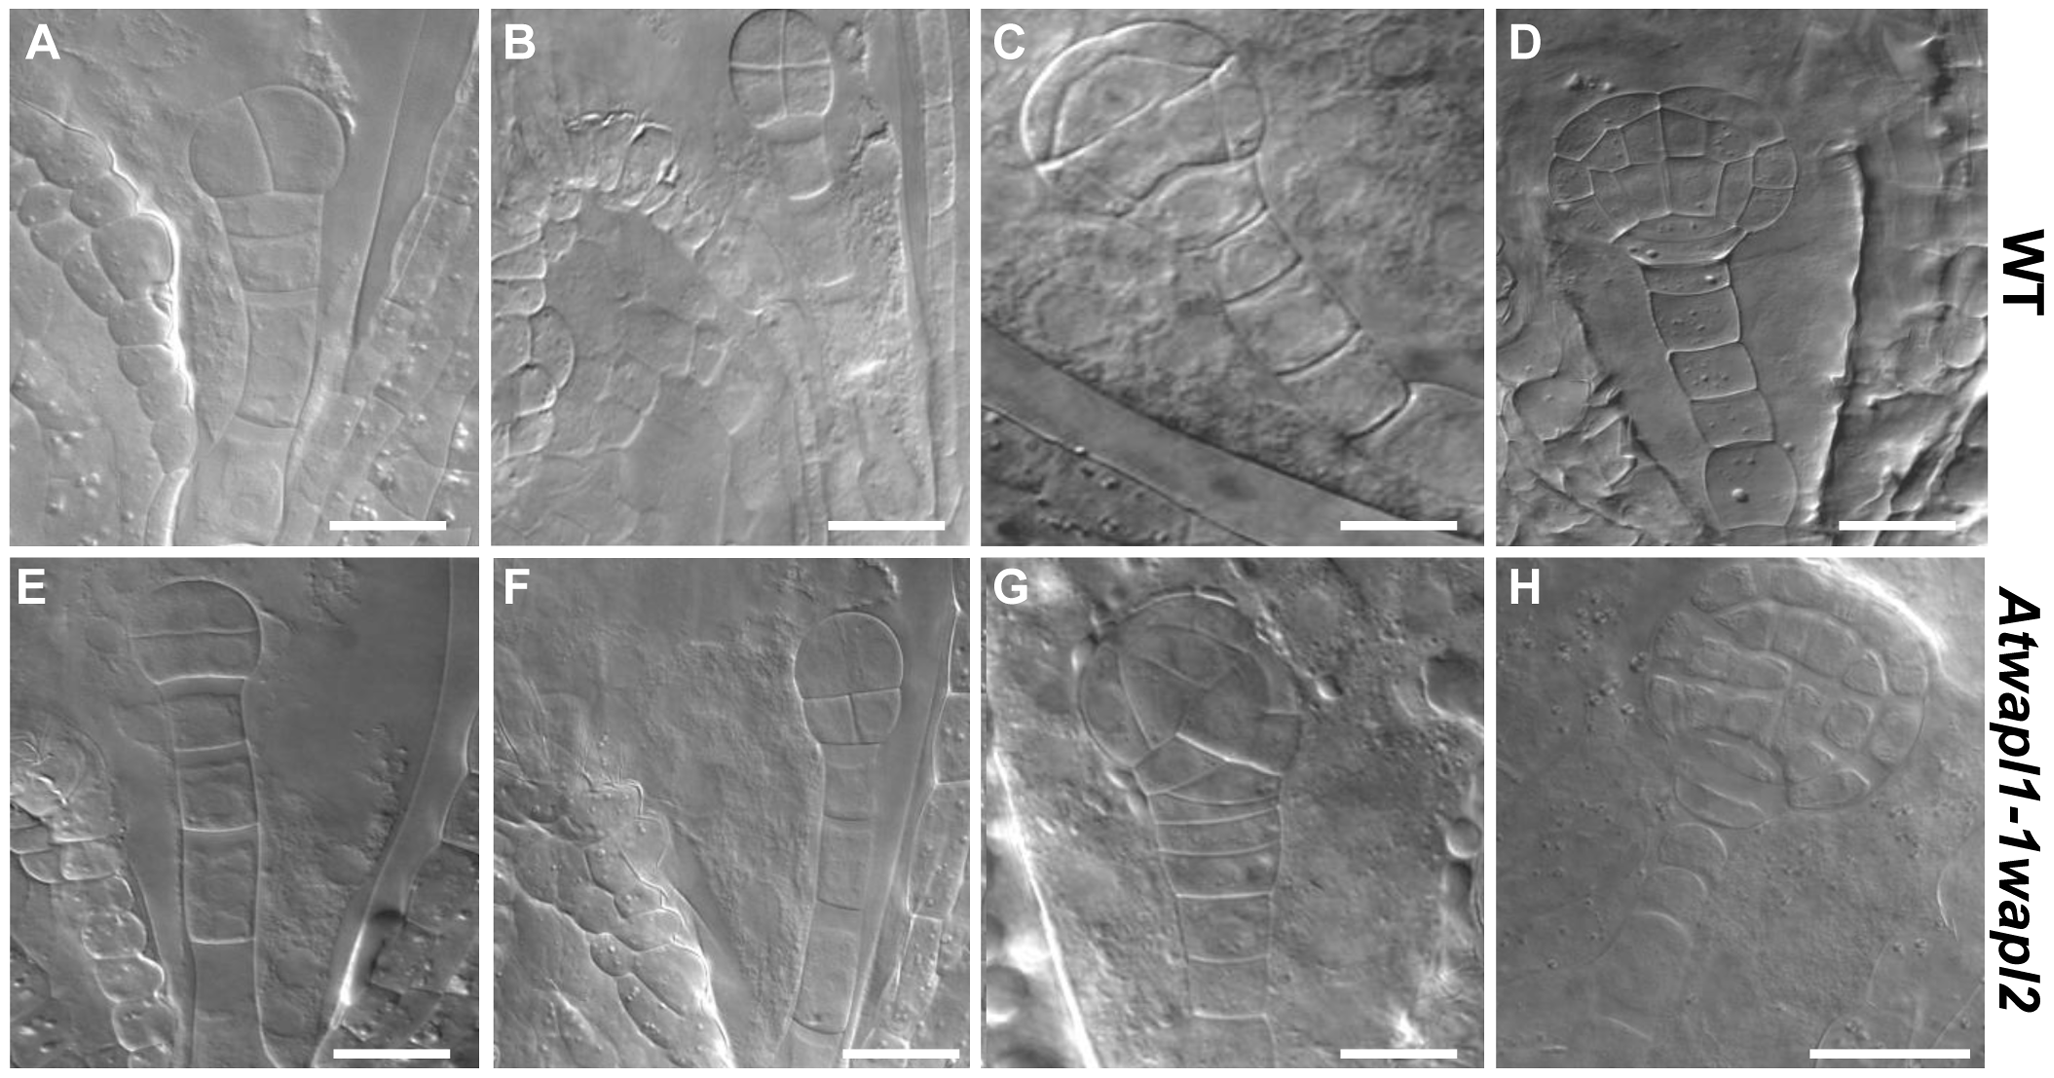 Embryonic patterning is defective in the seeds of <i>Atwapl1-1wapl2</i> plants.